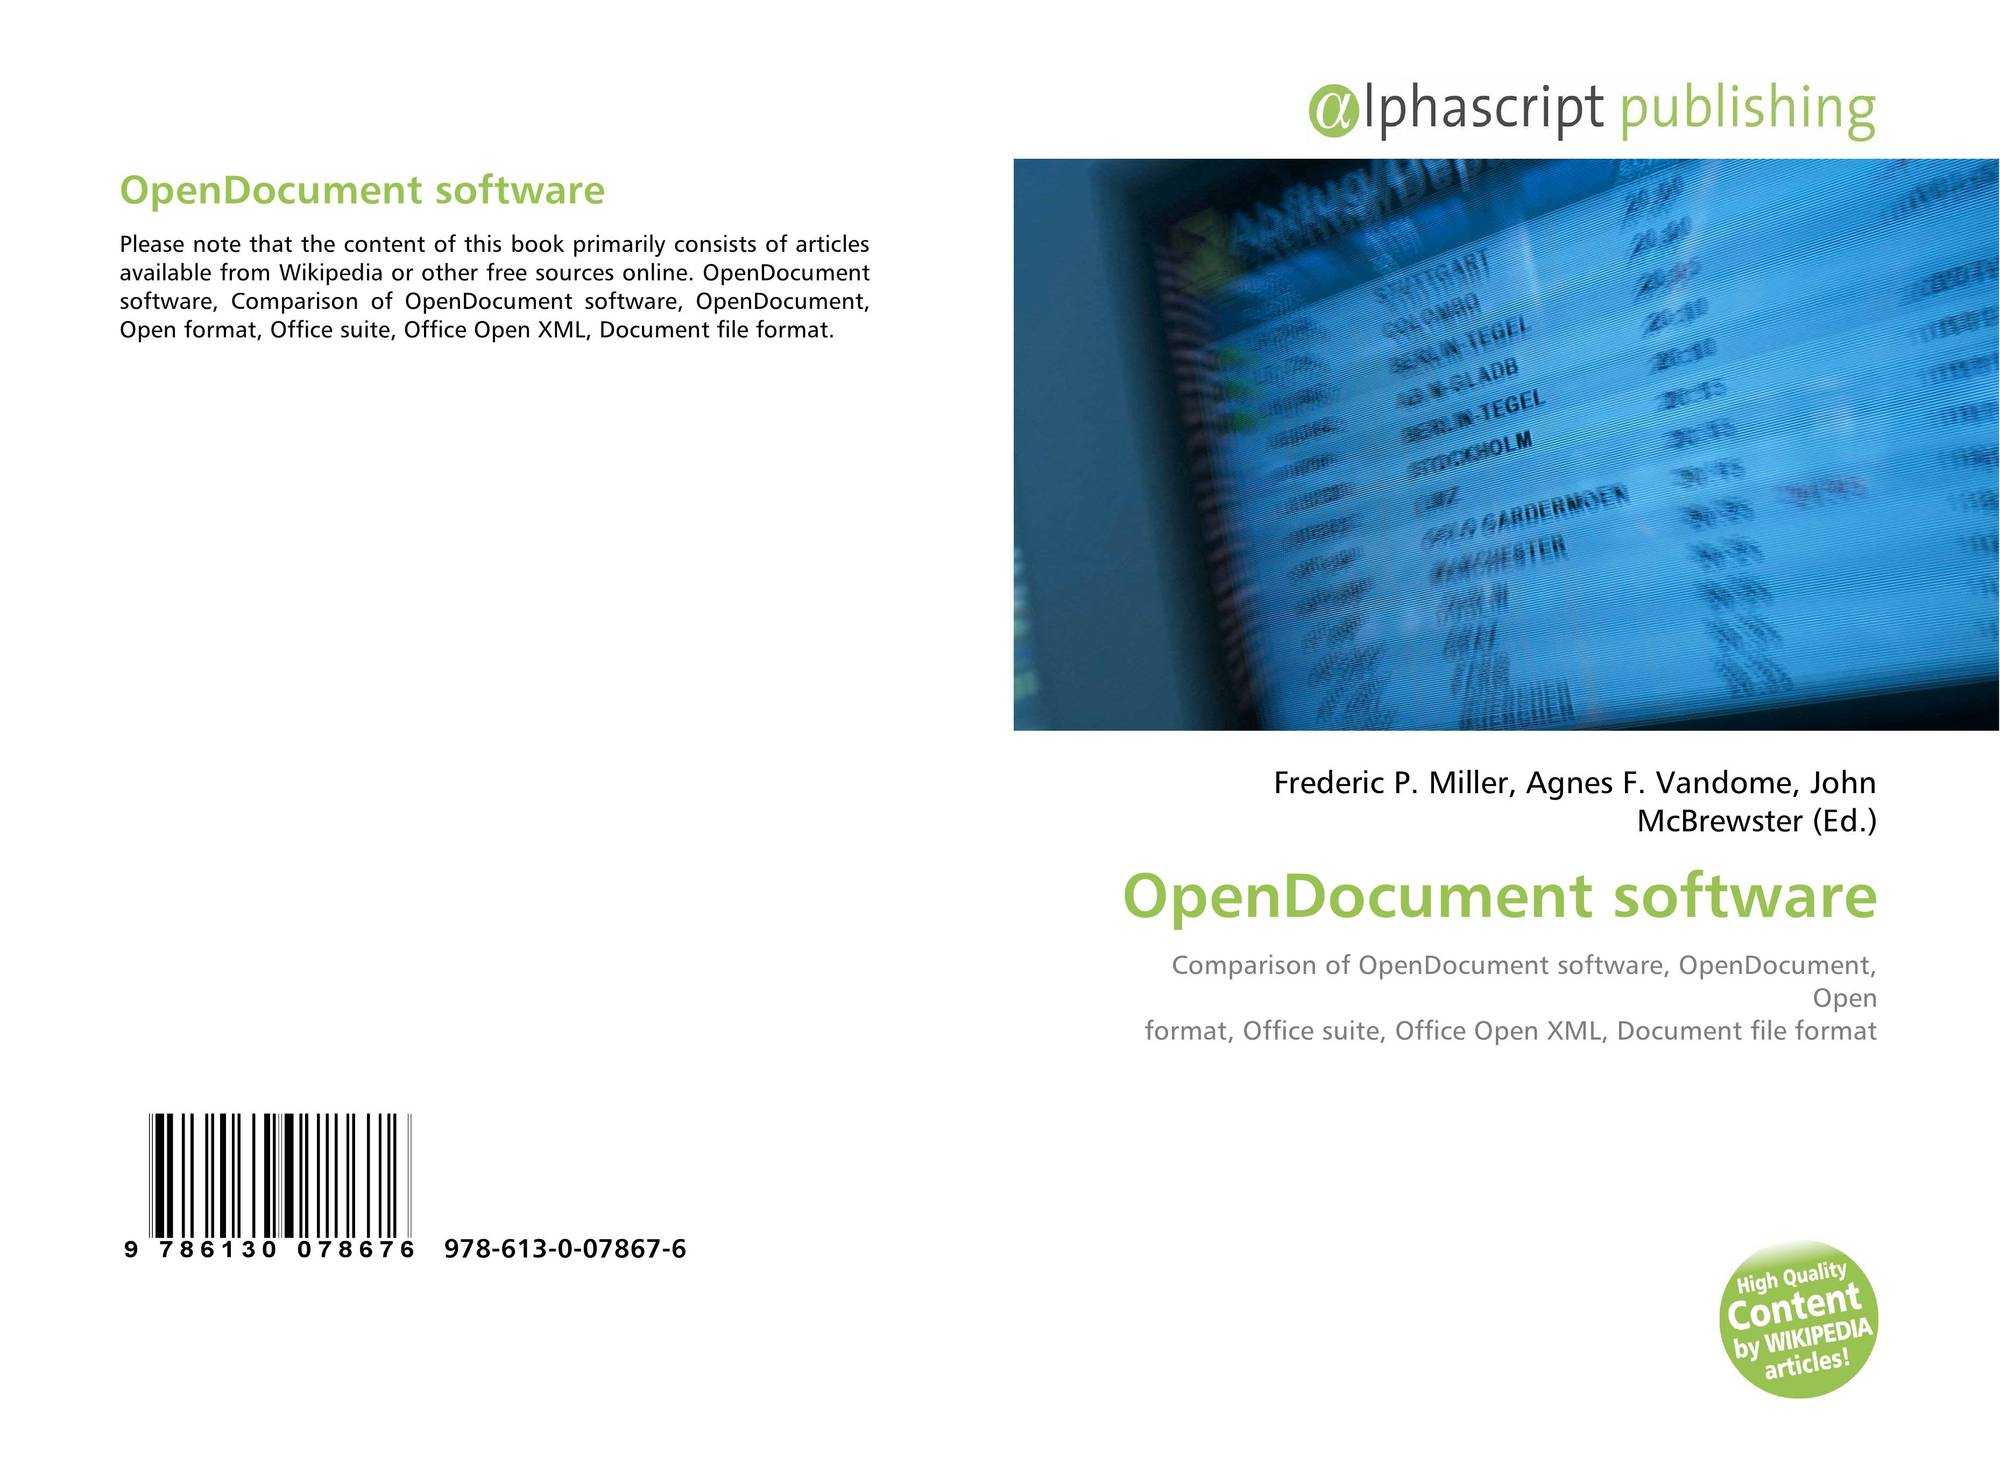 OpenDocument software, 978-613-0-07867-6, 6130078676 ,9786130078676